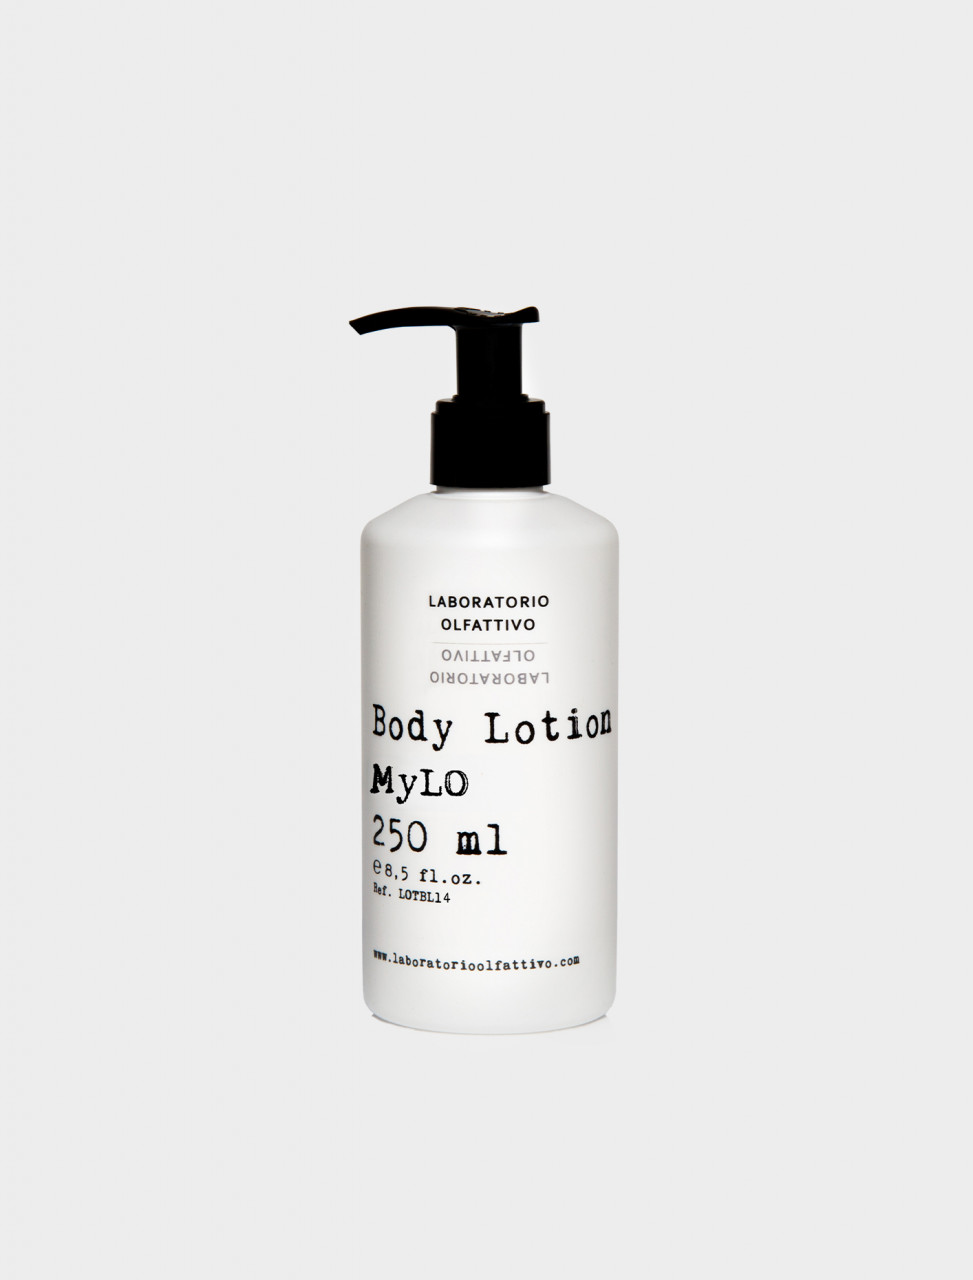 339-LOTBL14 LABORATORIO OLFATTIVO BODY LOTION MYLO 250ML 8050043469137